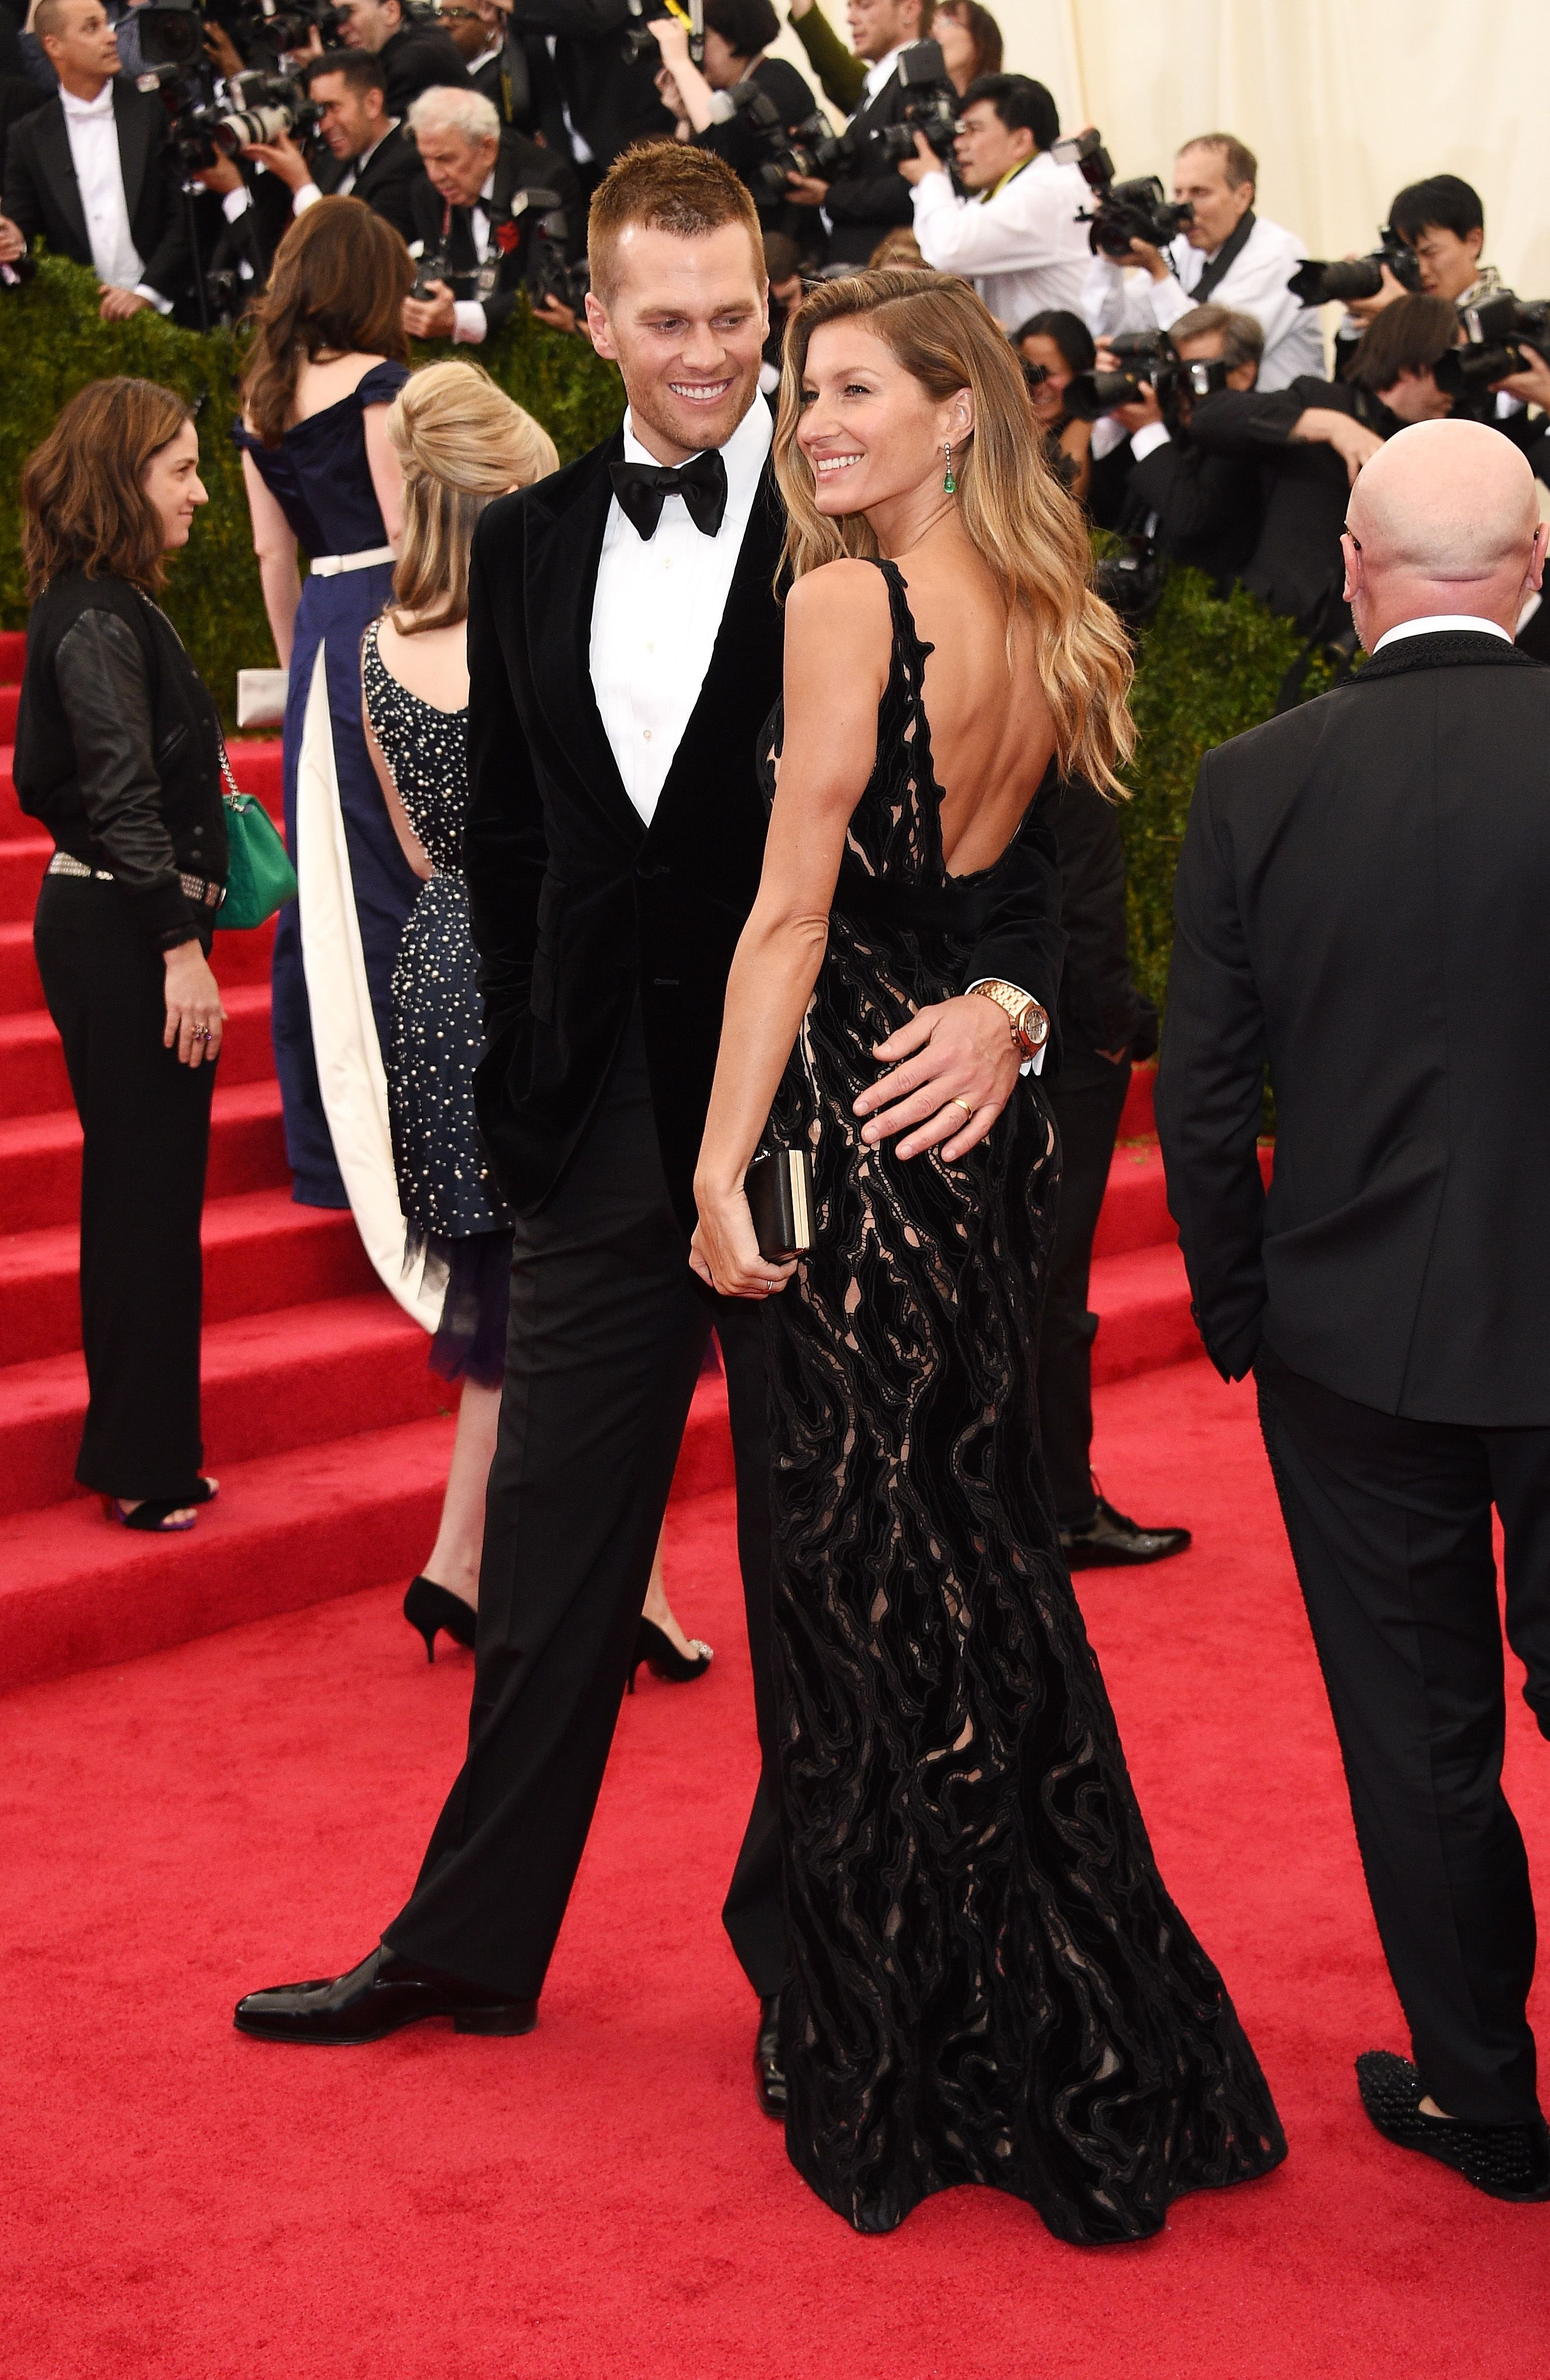 Communication on this topic: Gisele Is the Model of Self-Restraint, gisele-is-the-model-of-self-restraint/